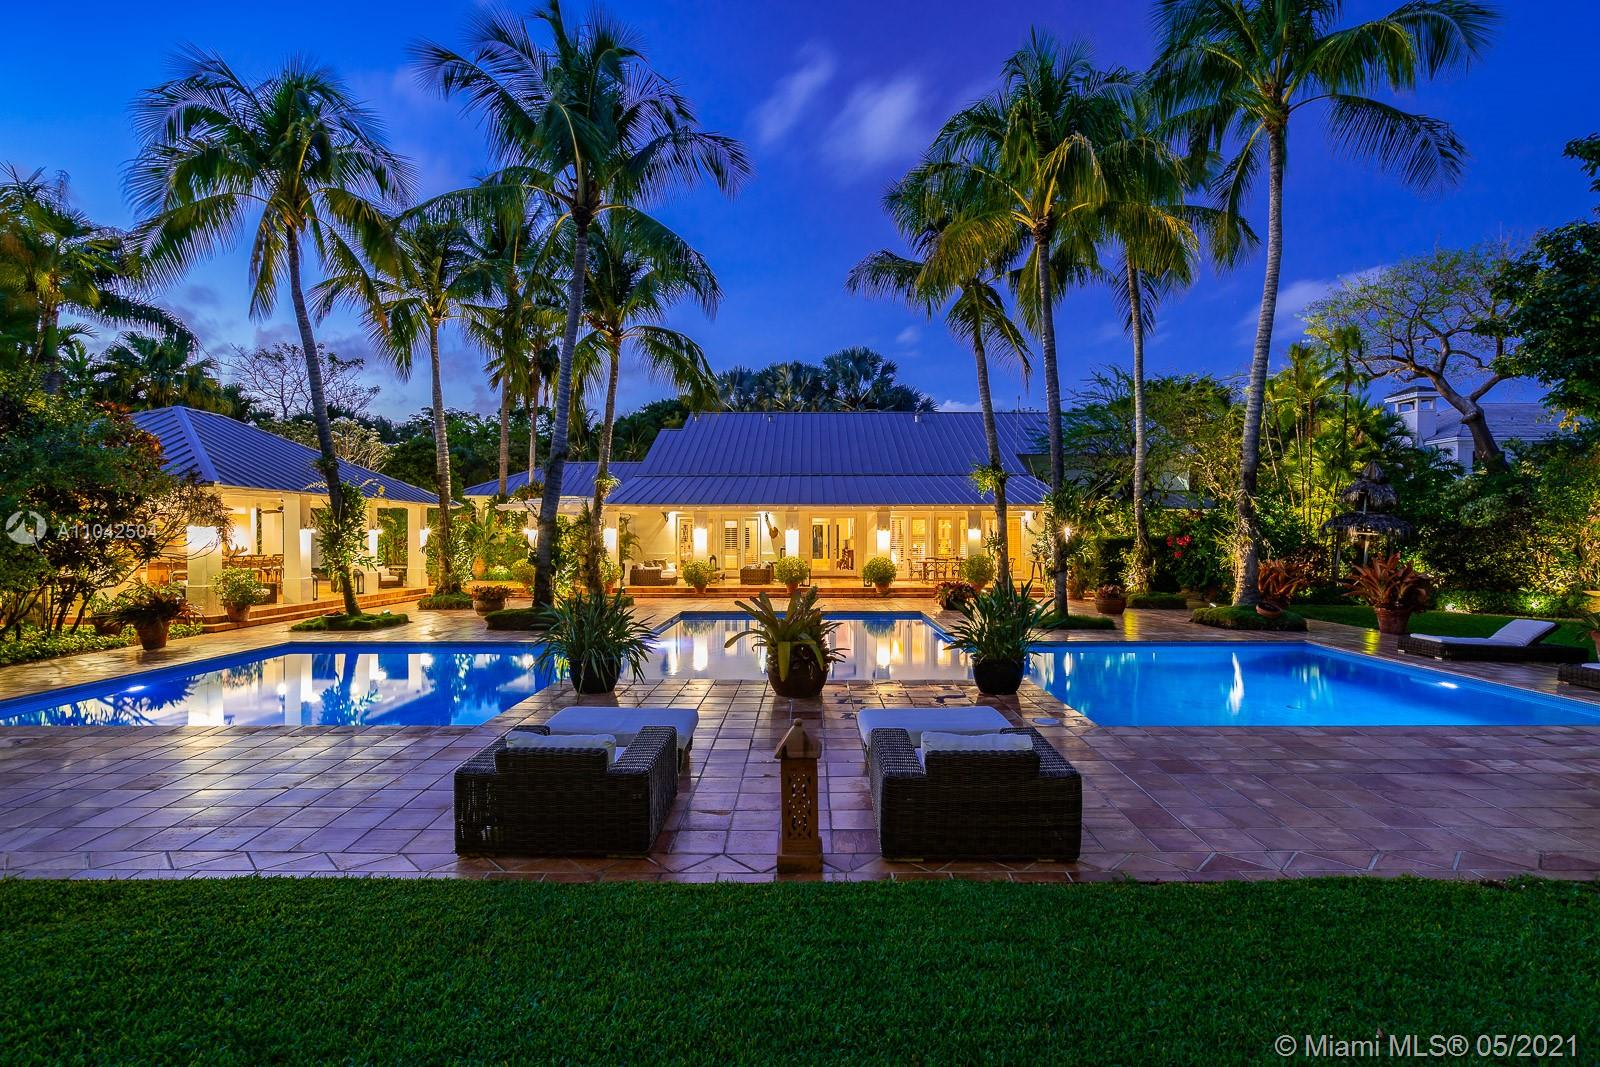 Fall in love with this extraordinary estate that is the essence of South Florida living. Magnificent interiors and splendid al fresco spaces are nestled in a vibrant flora of striking exotics. Volume ceilings, walls of glass, and splendid grass cloth coverings are the backdrop to grand social spaces which include a huge eat-in kitchen, family room w/ 1200+ bottle wine cellar, and fabulous living & dining rms. Bedrooms are glorious; each w/ ensuite bath, and the master suite is a divine spa in itself.The crown jewel of this paradise is the outdoor oasis of covered verandas, resort-style pool, remarkable summer kitchen, and breathtaking canopy of color. One could never imagine what lies beyond these gates, and PS, there is a 3-car garage w/ air-conditioned gym and a full house generator too!